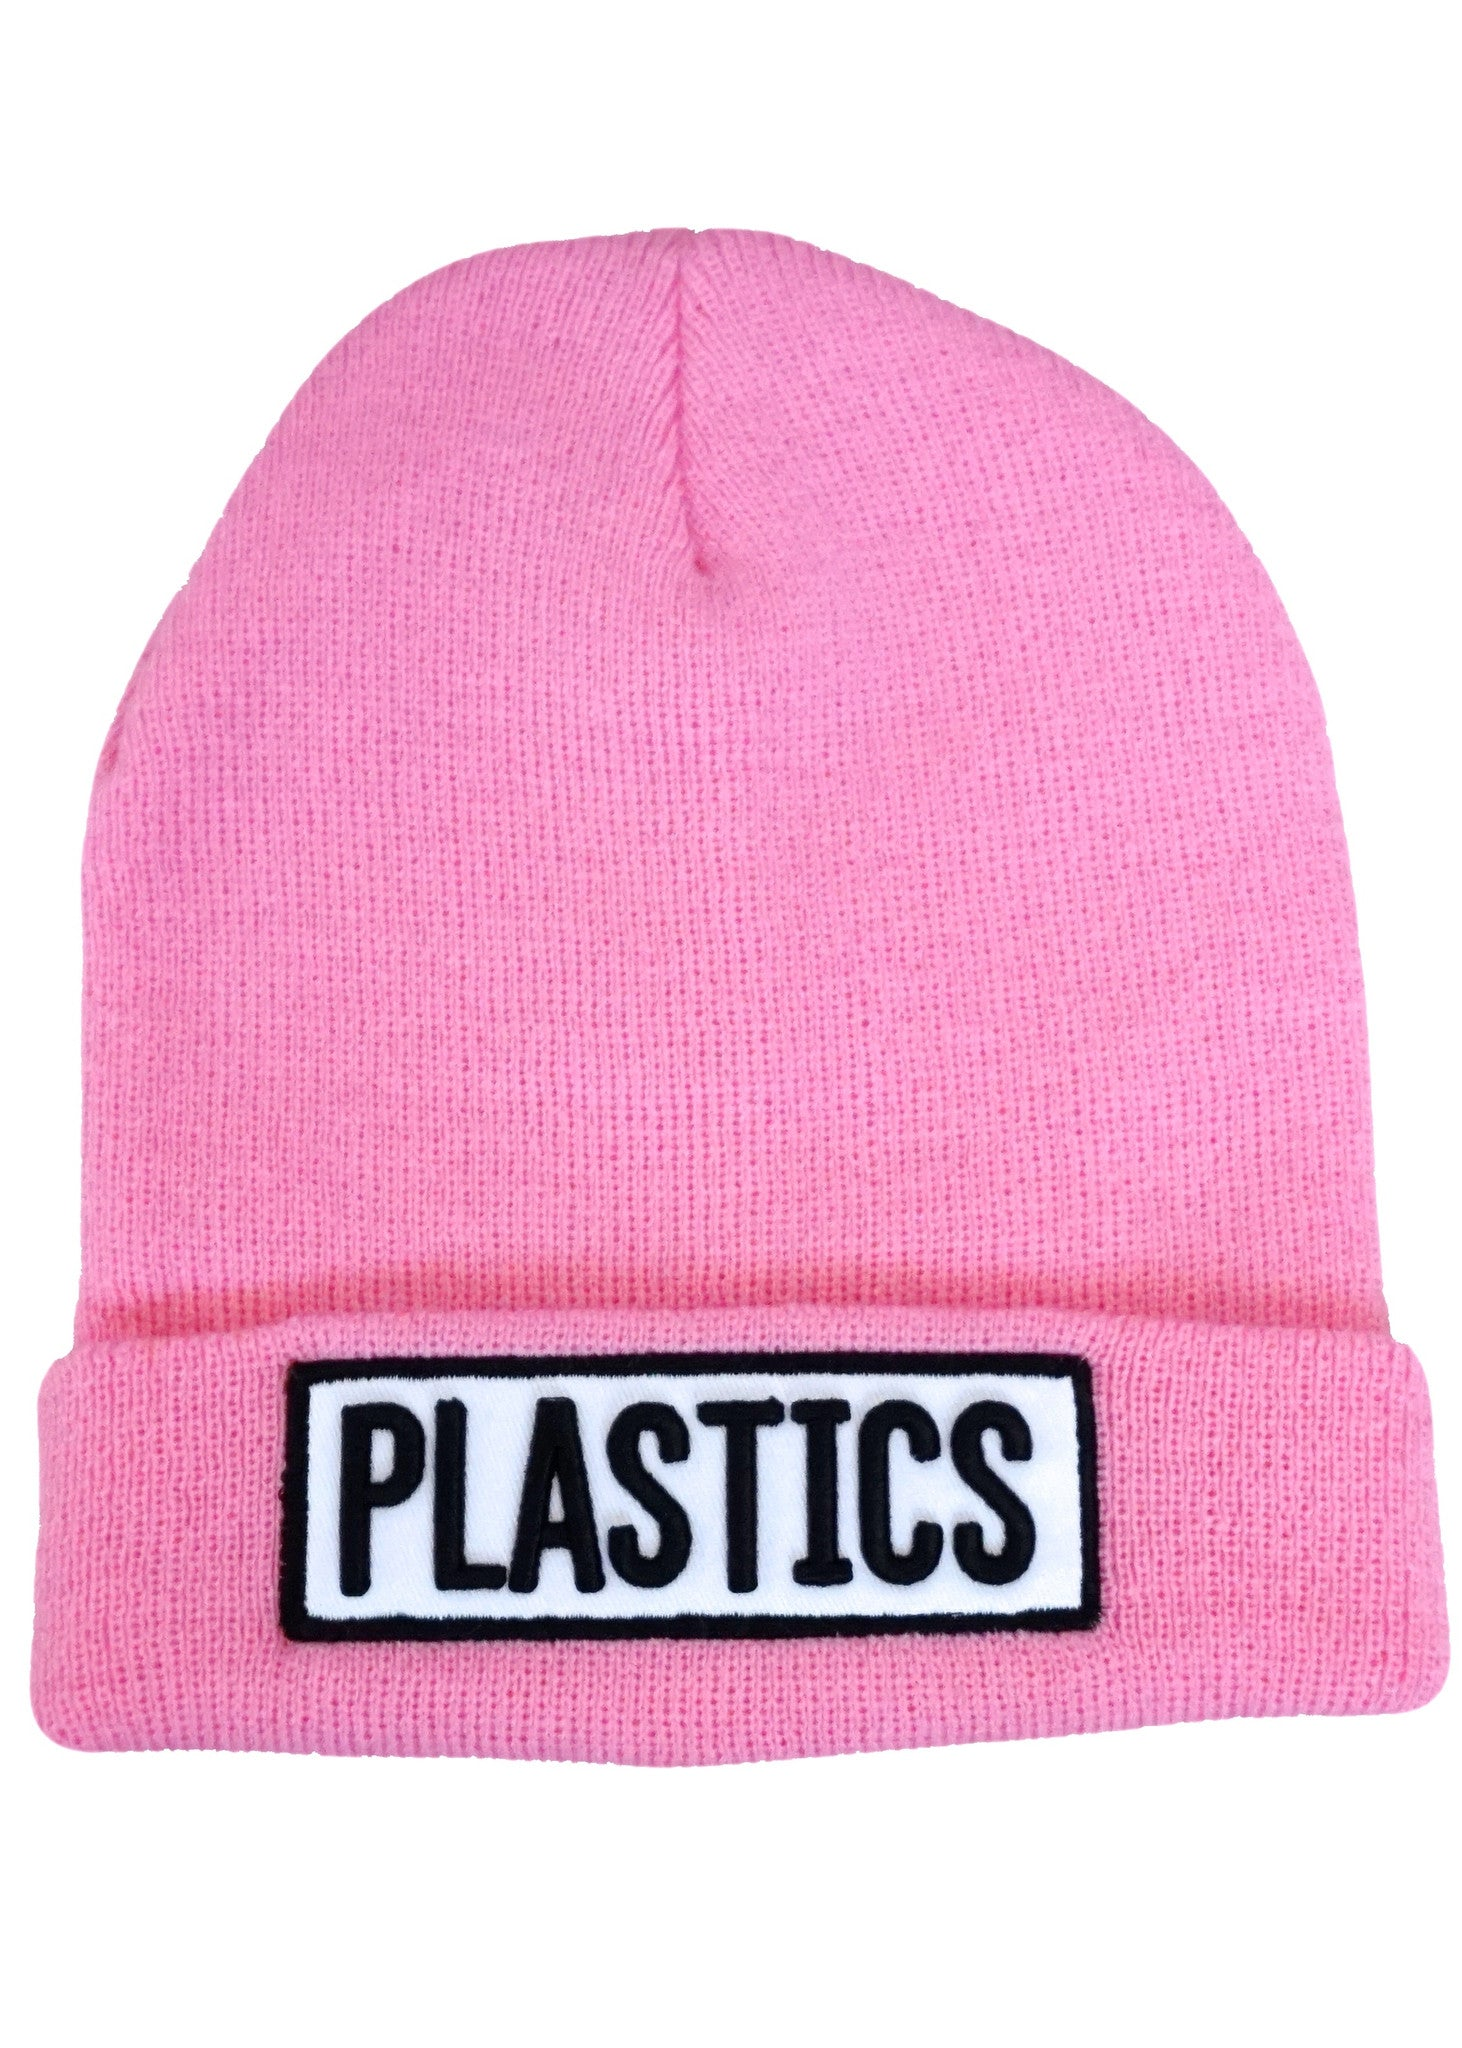 Pink Plastics Beanie (SOLD OUT)